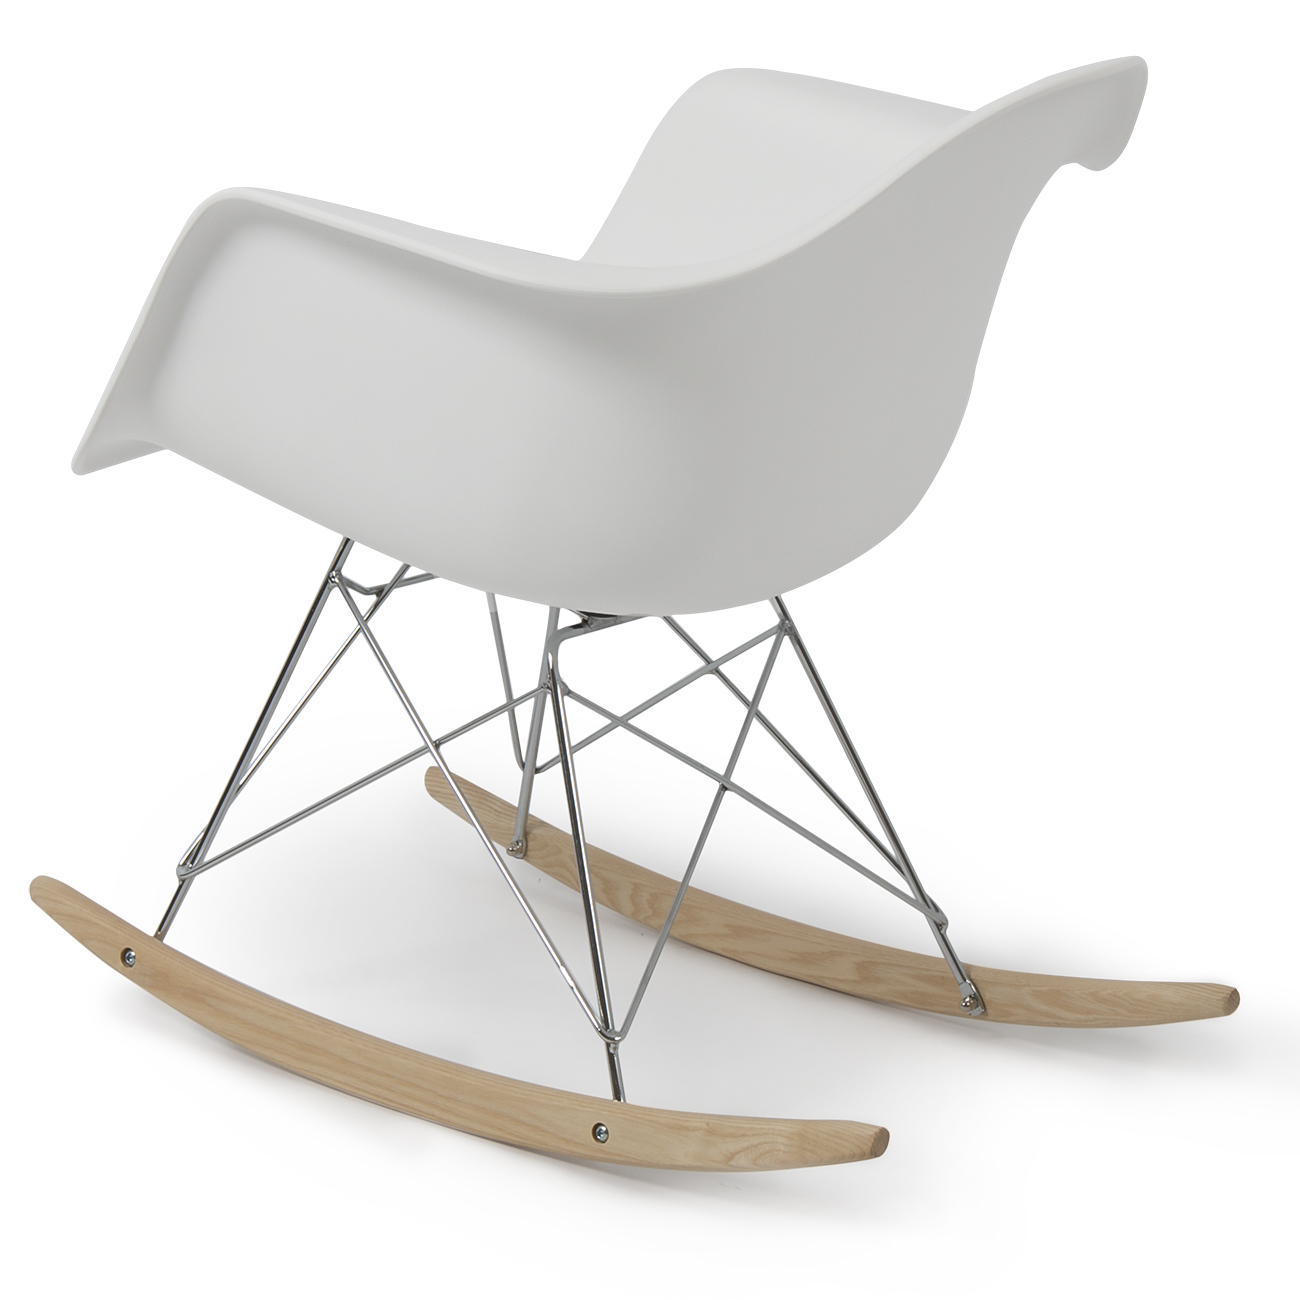 New eames rocker rocking indoor wood chair rar dsw style